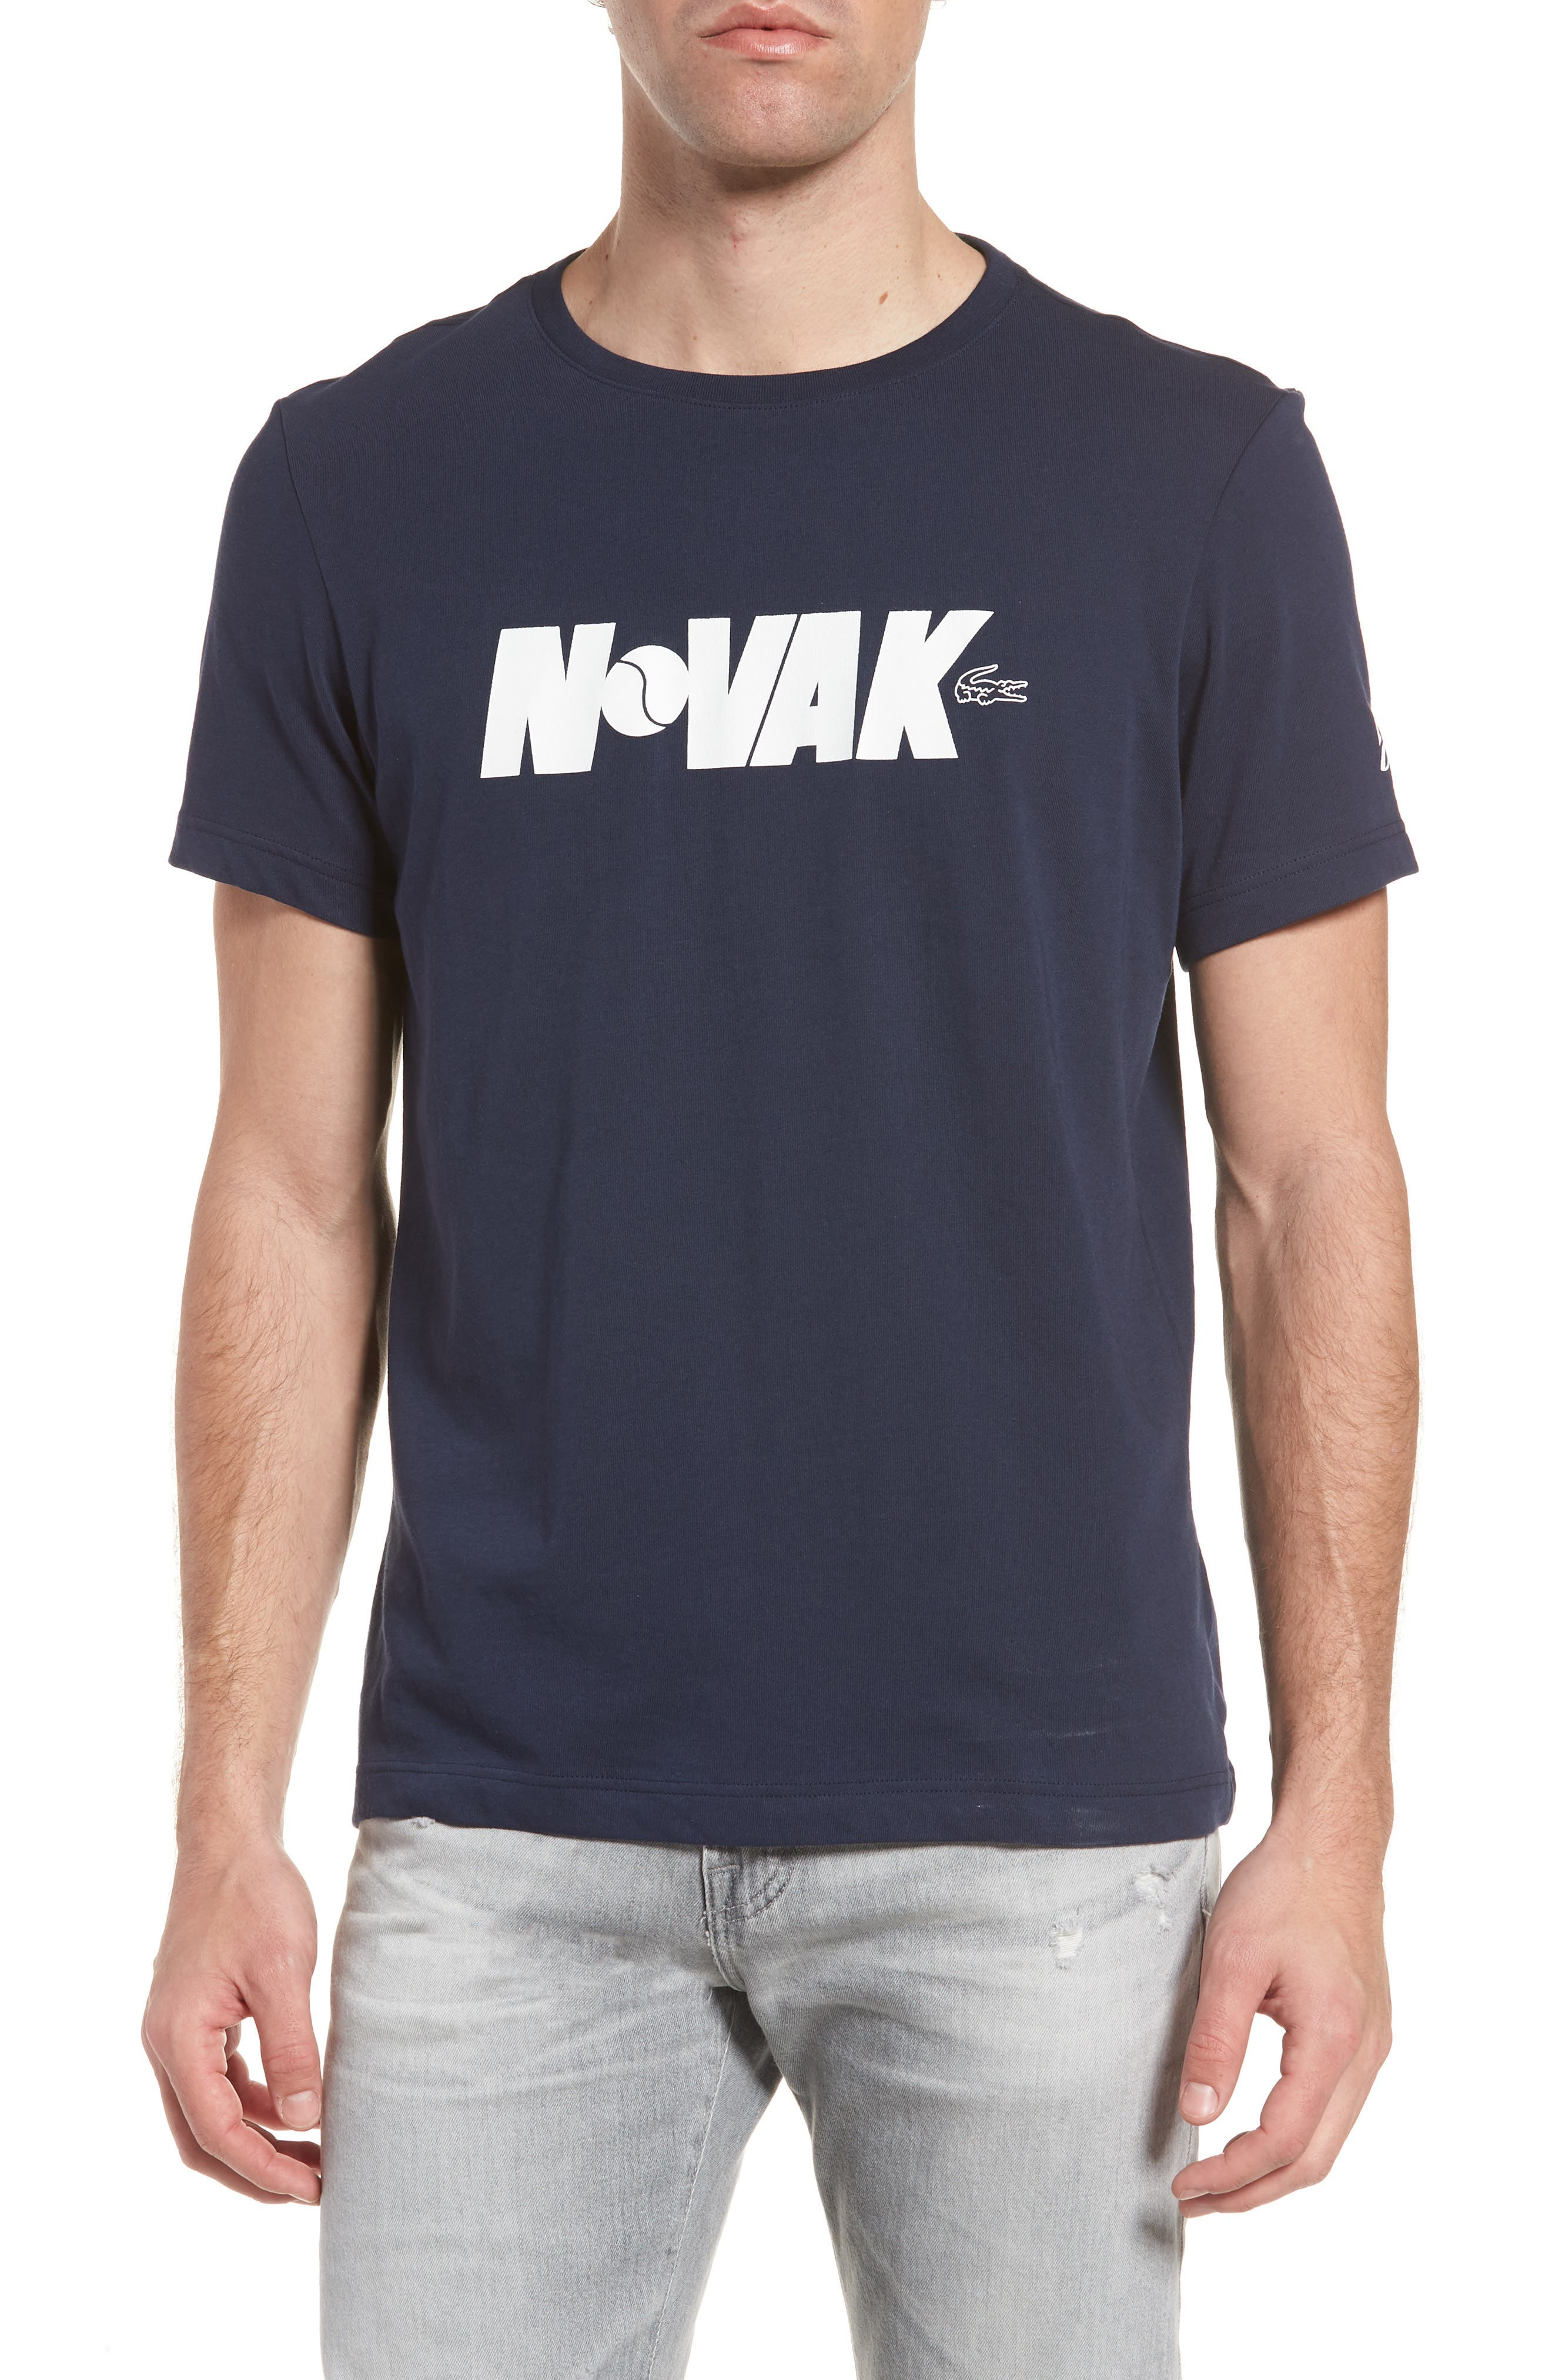 Sport Novak Djokovic Crewneck Tech Jersey T-Shirt,                         Main,                         color, Navy Blue/ White